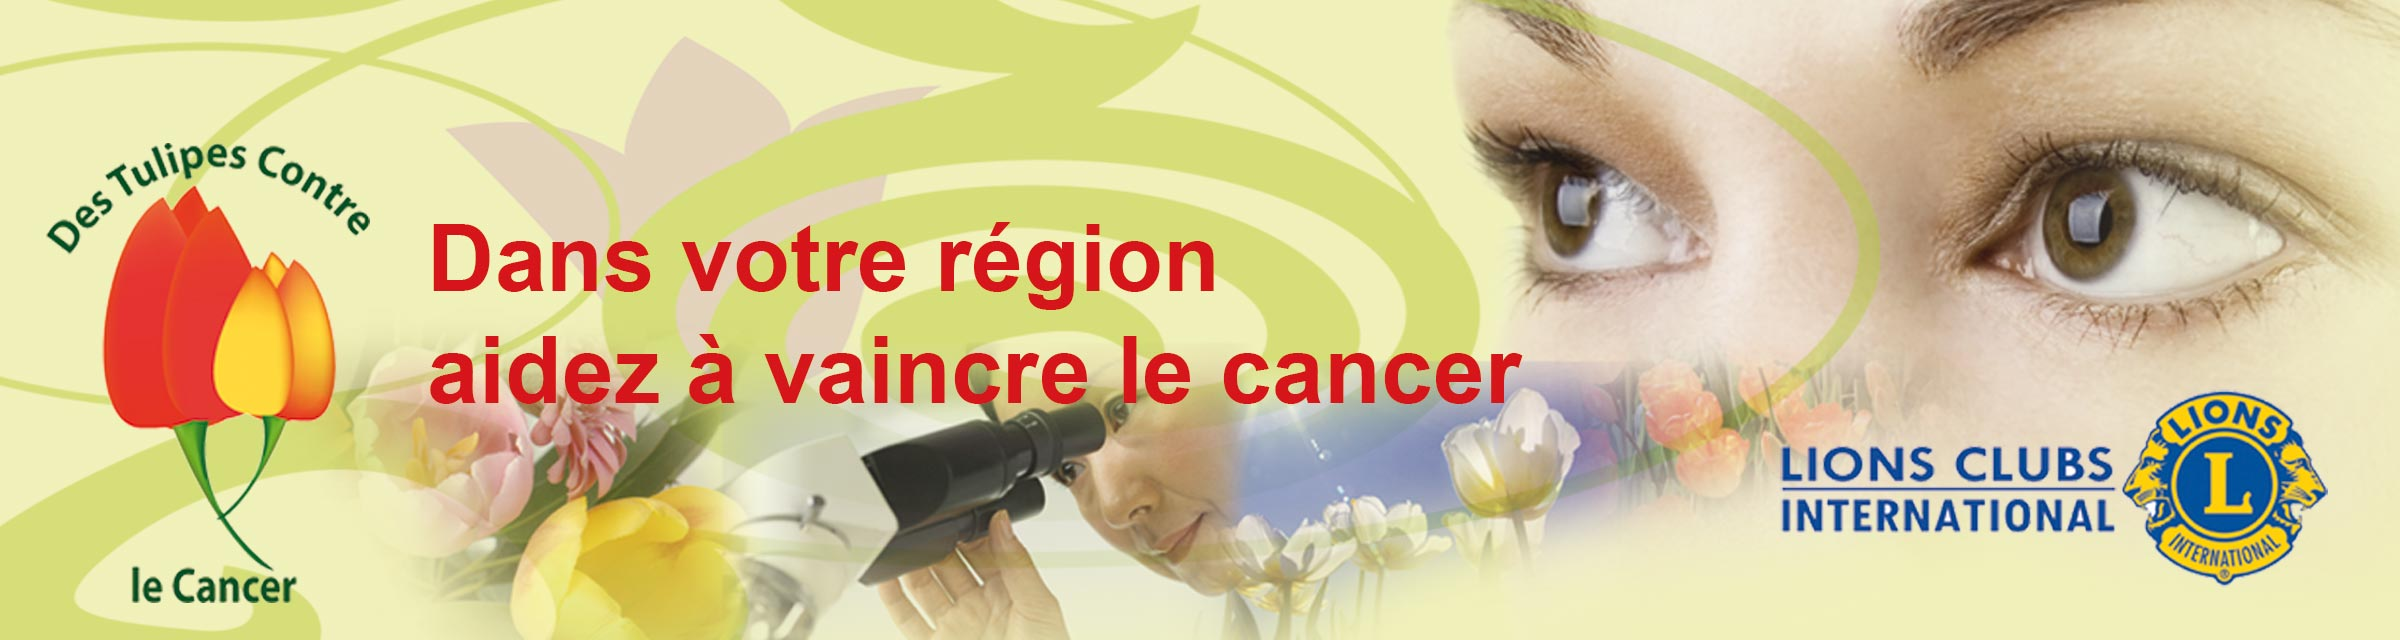 Bannière Tulipes Contre le Cancer - SCIC - Lions Club international